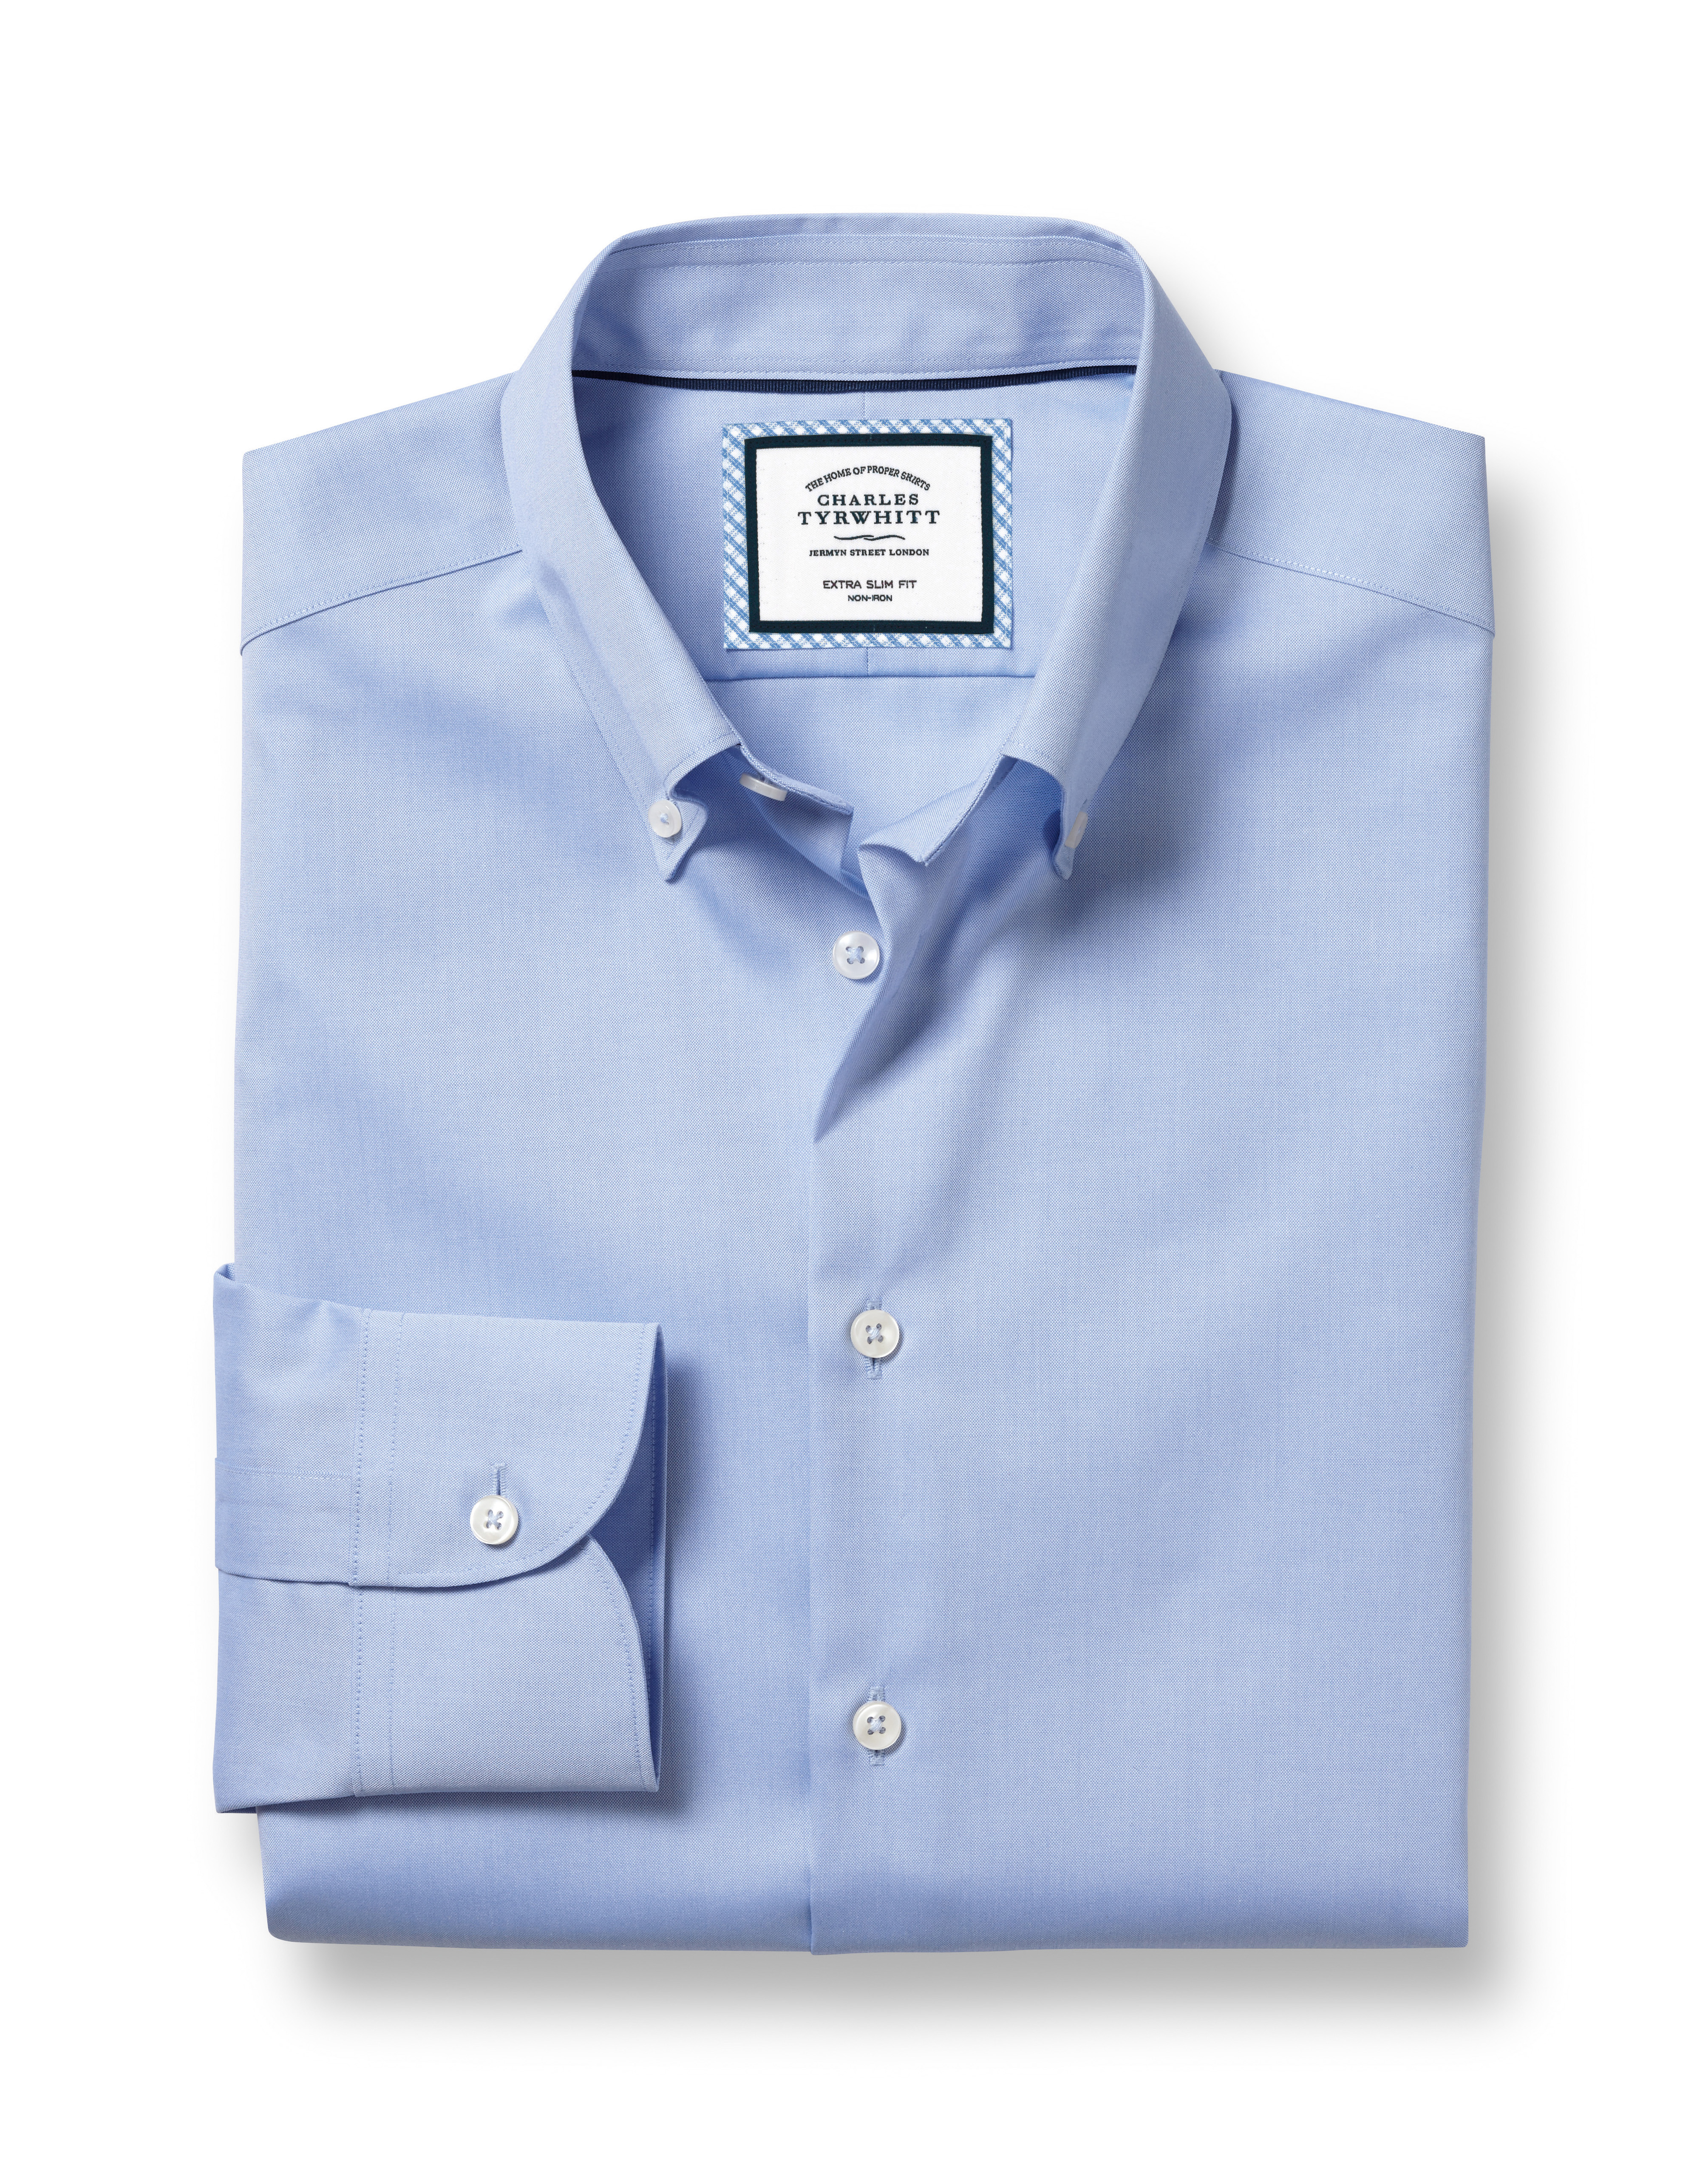 Classic Fit Business Casual Non-Iron Button-Down Sky Blue Cotton Formal Shirt Single Cuff Size 15/34